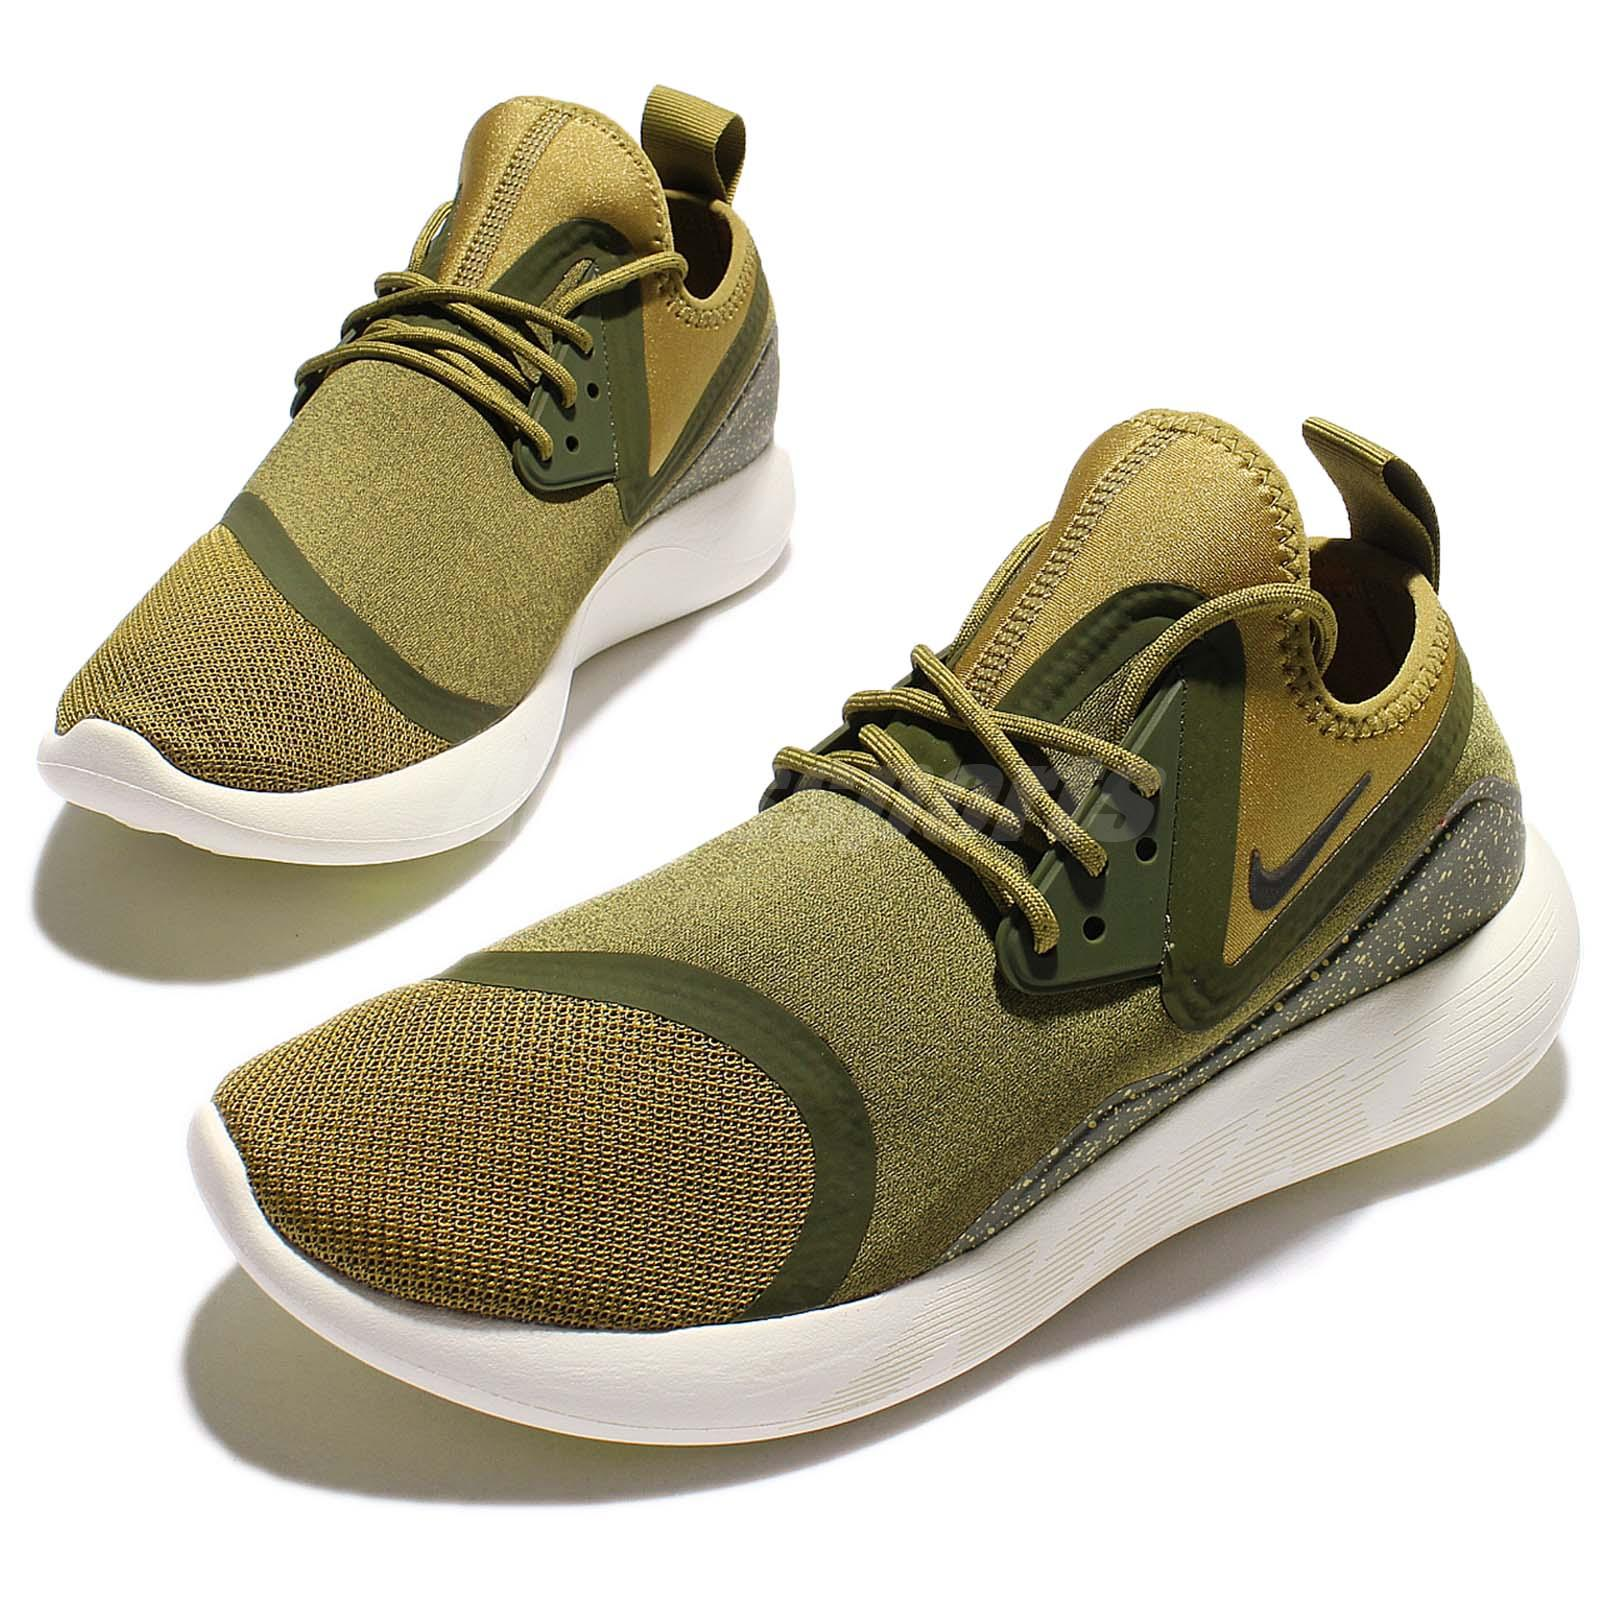 Nike Lunarcharge Essential Camper Green Men Running Shoes Sneakers ... 16c54769d